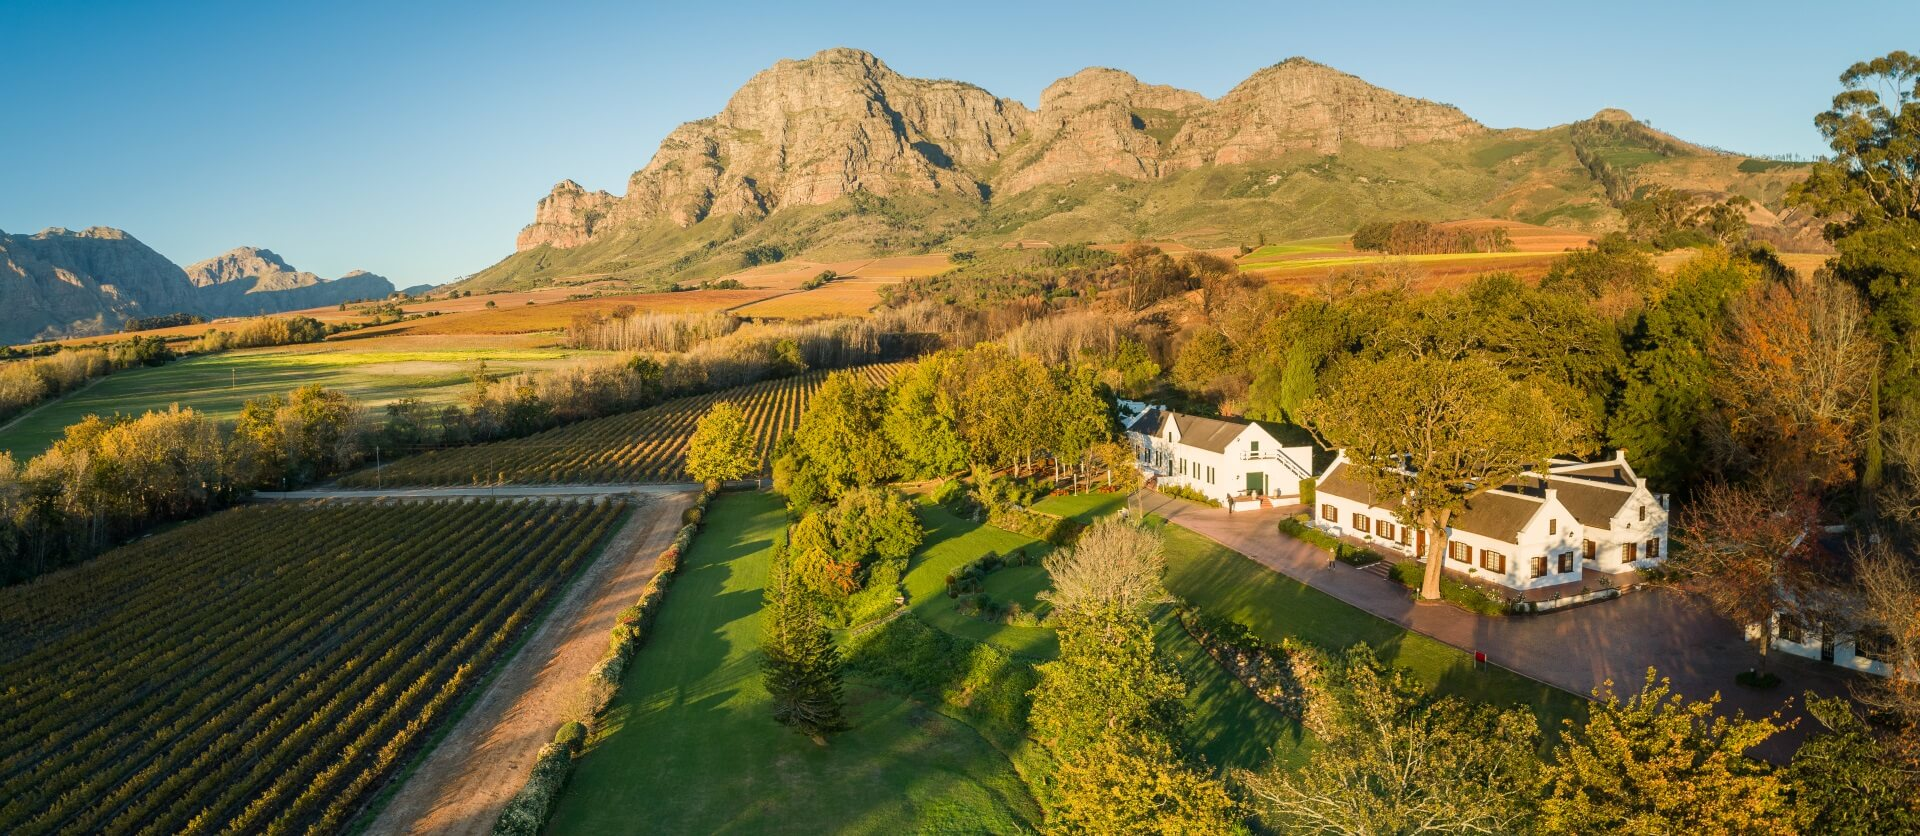 Aerial view of Plaisir de Merle wine estate in Franschhoek